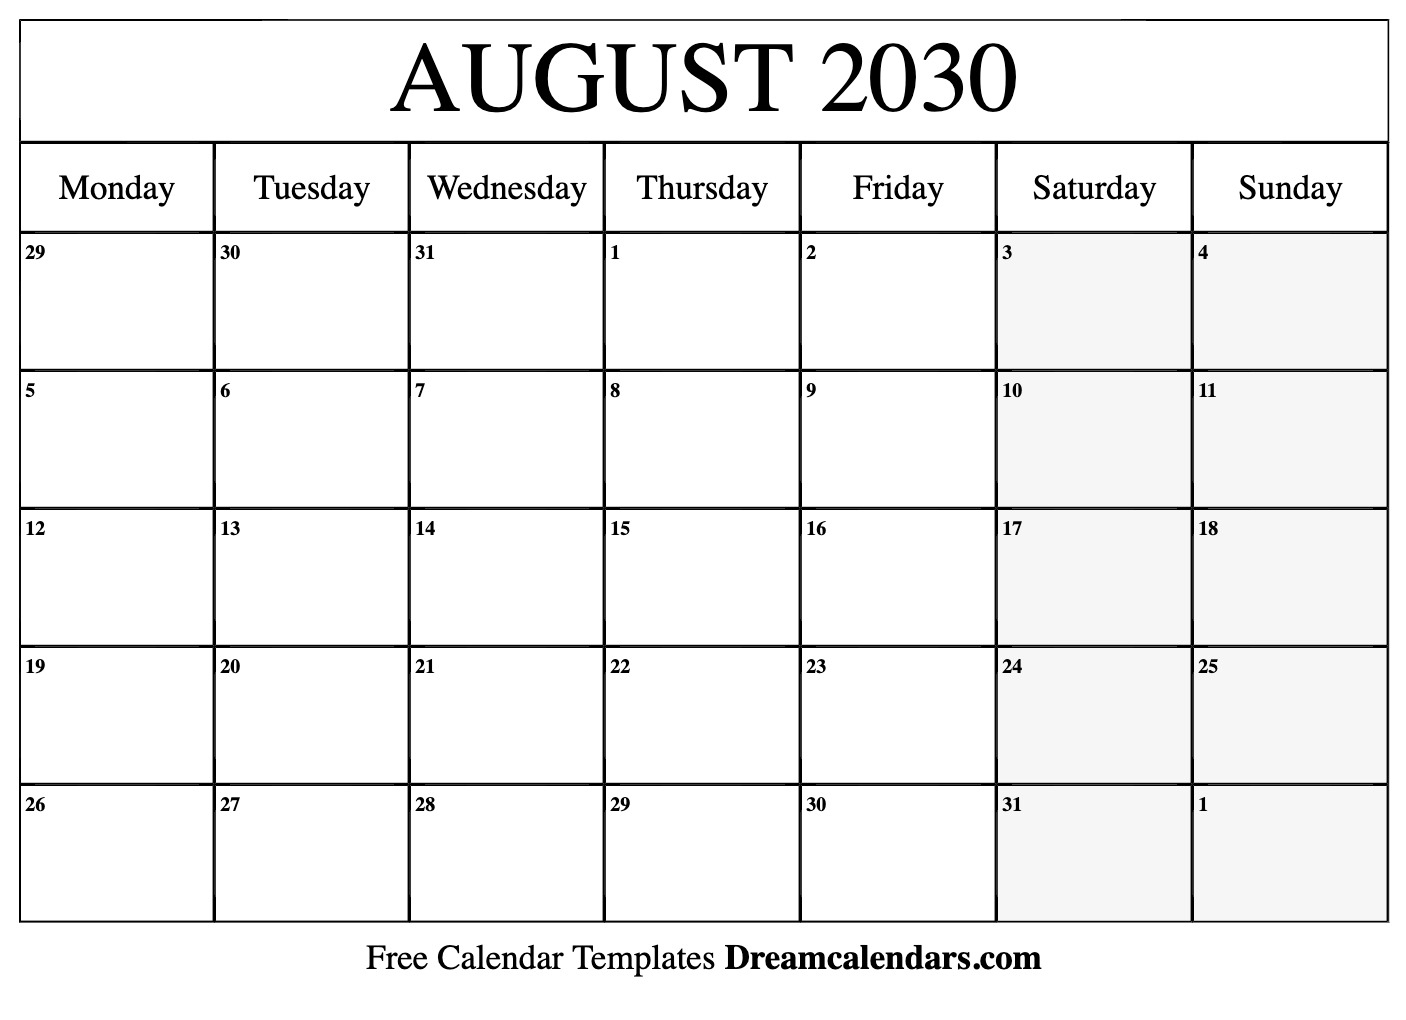 photograph about Free Printable August Calendar named Printable August 2030 Calendar